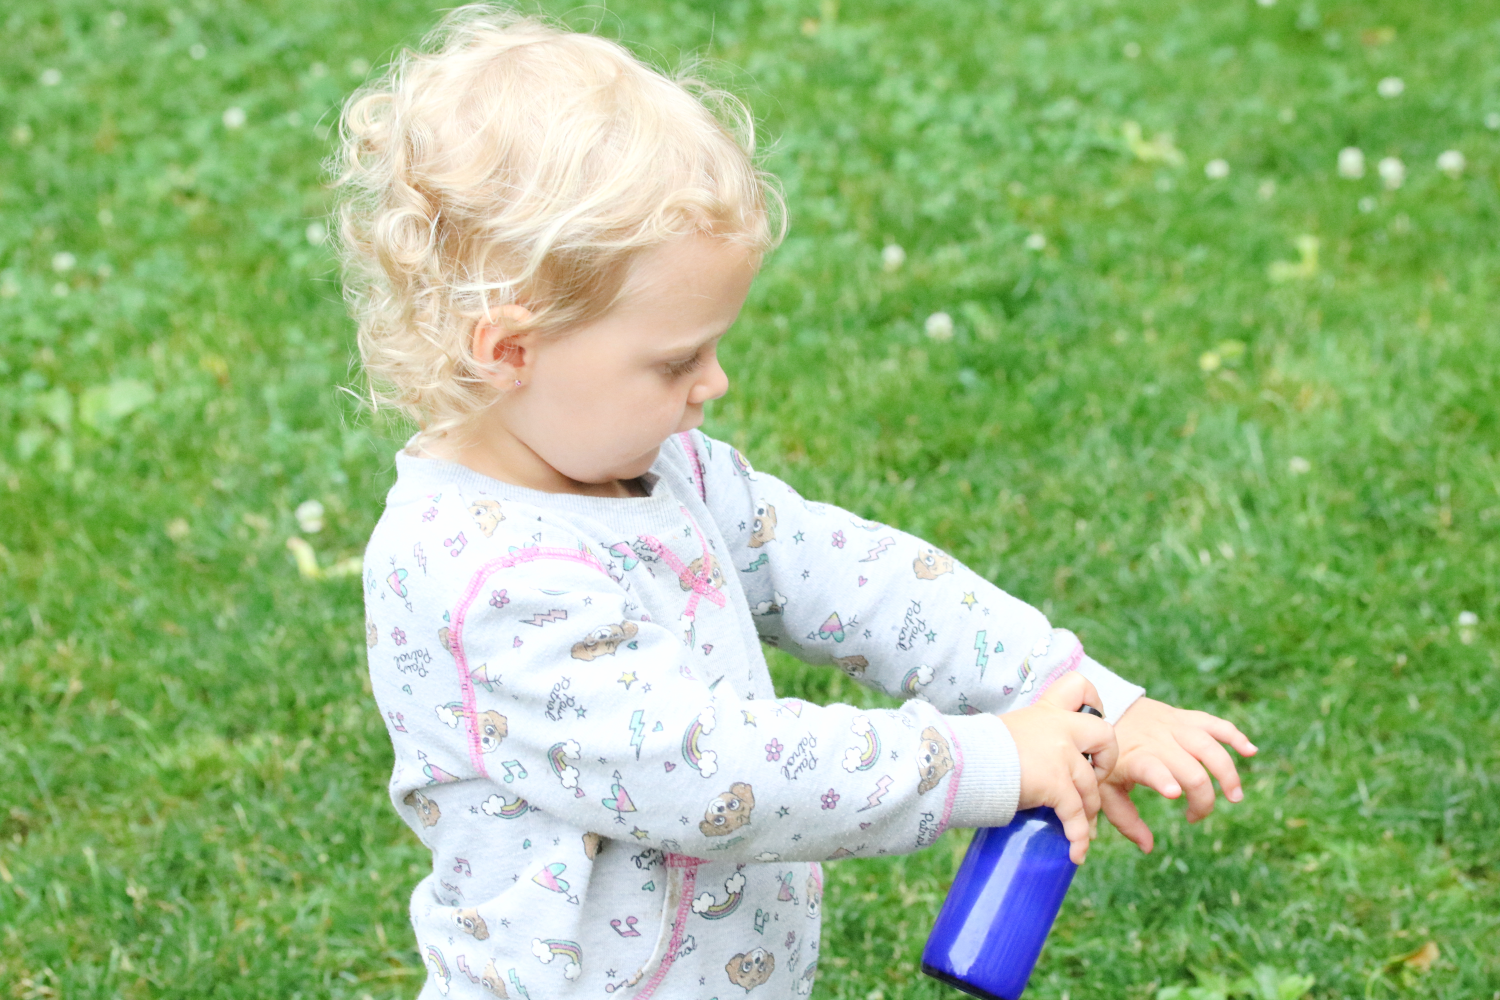 Toddler dressed in grey sweater spraying a blue glass bottle on her arm